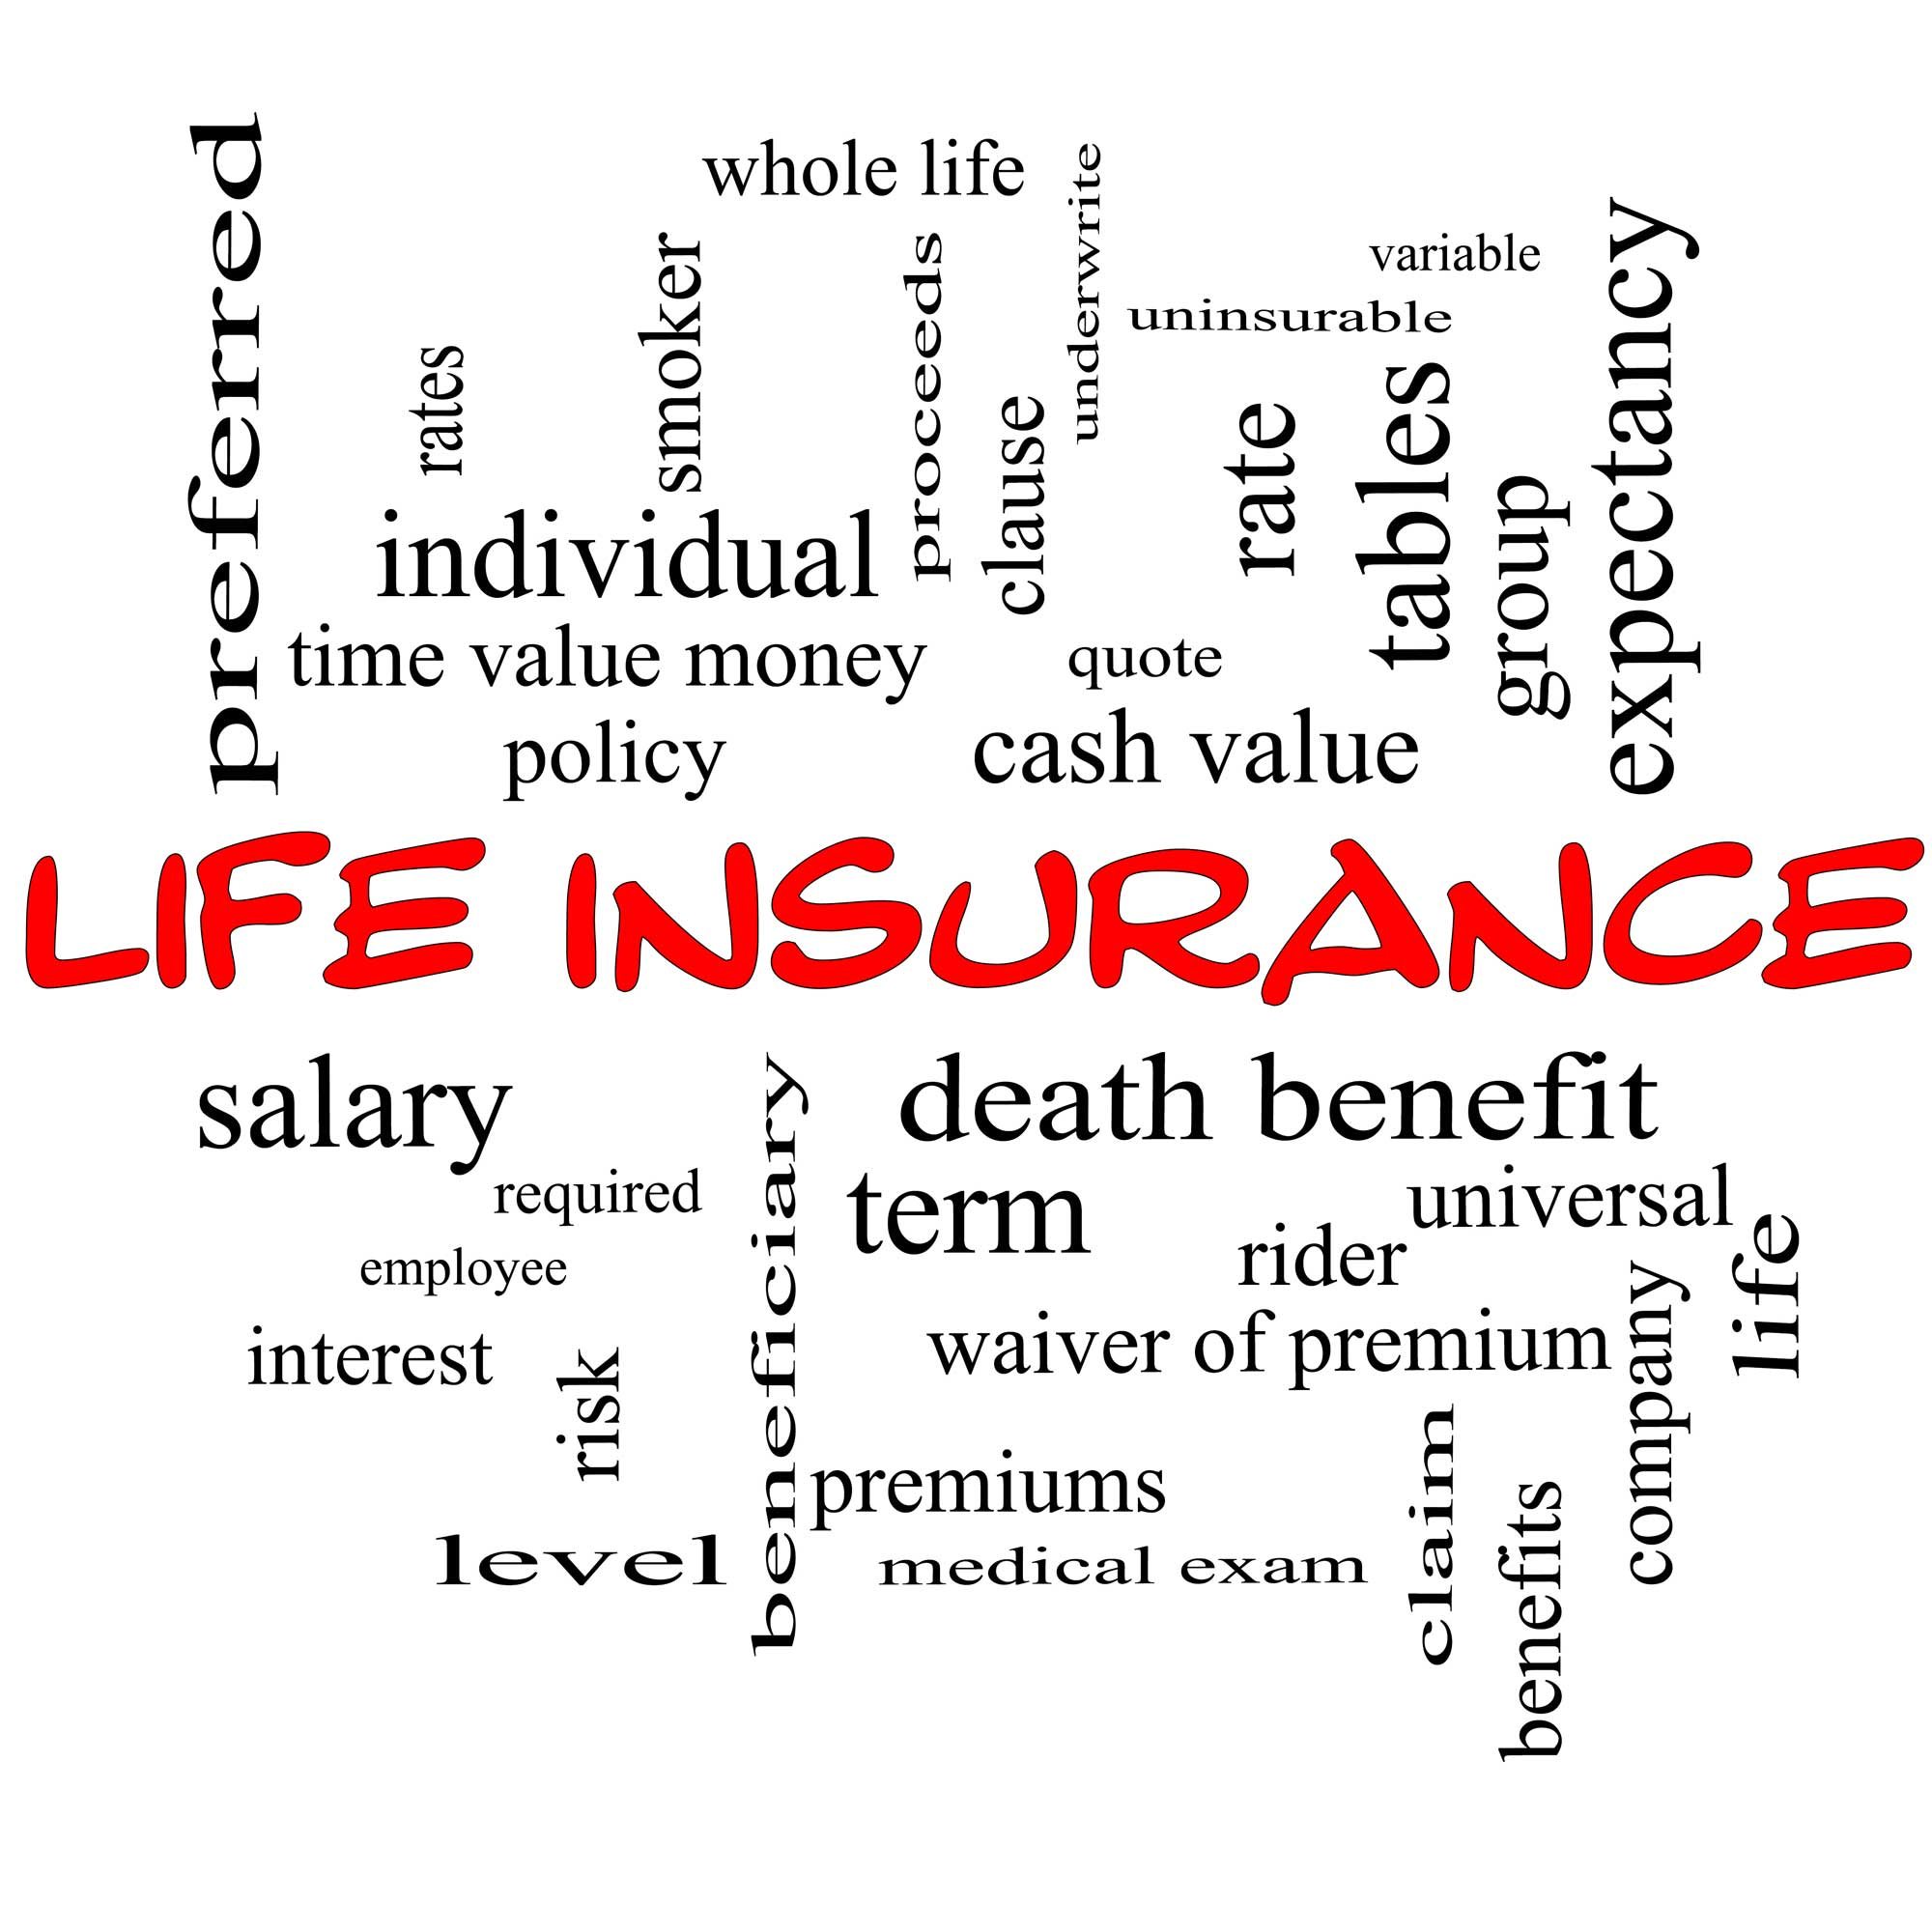 Affordable Life Insurance Quotes Individual Life Insurance  Lfa Insurance